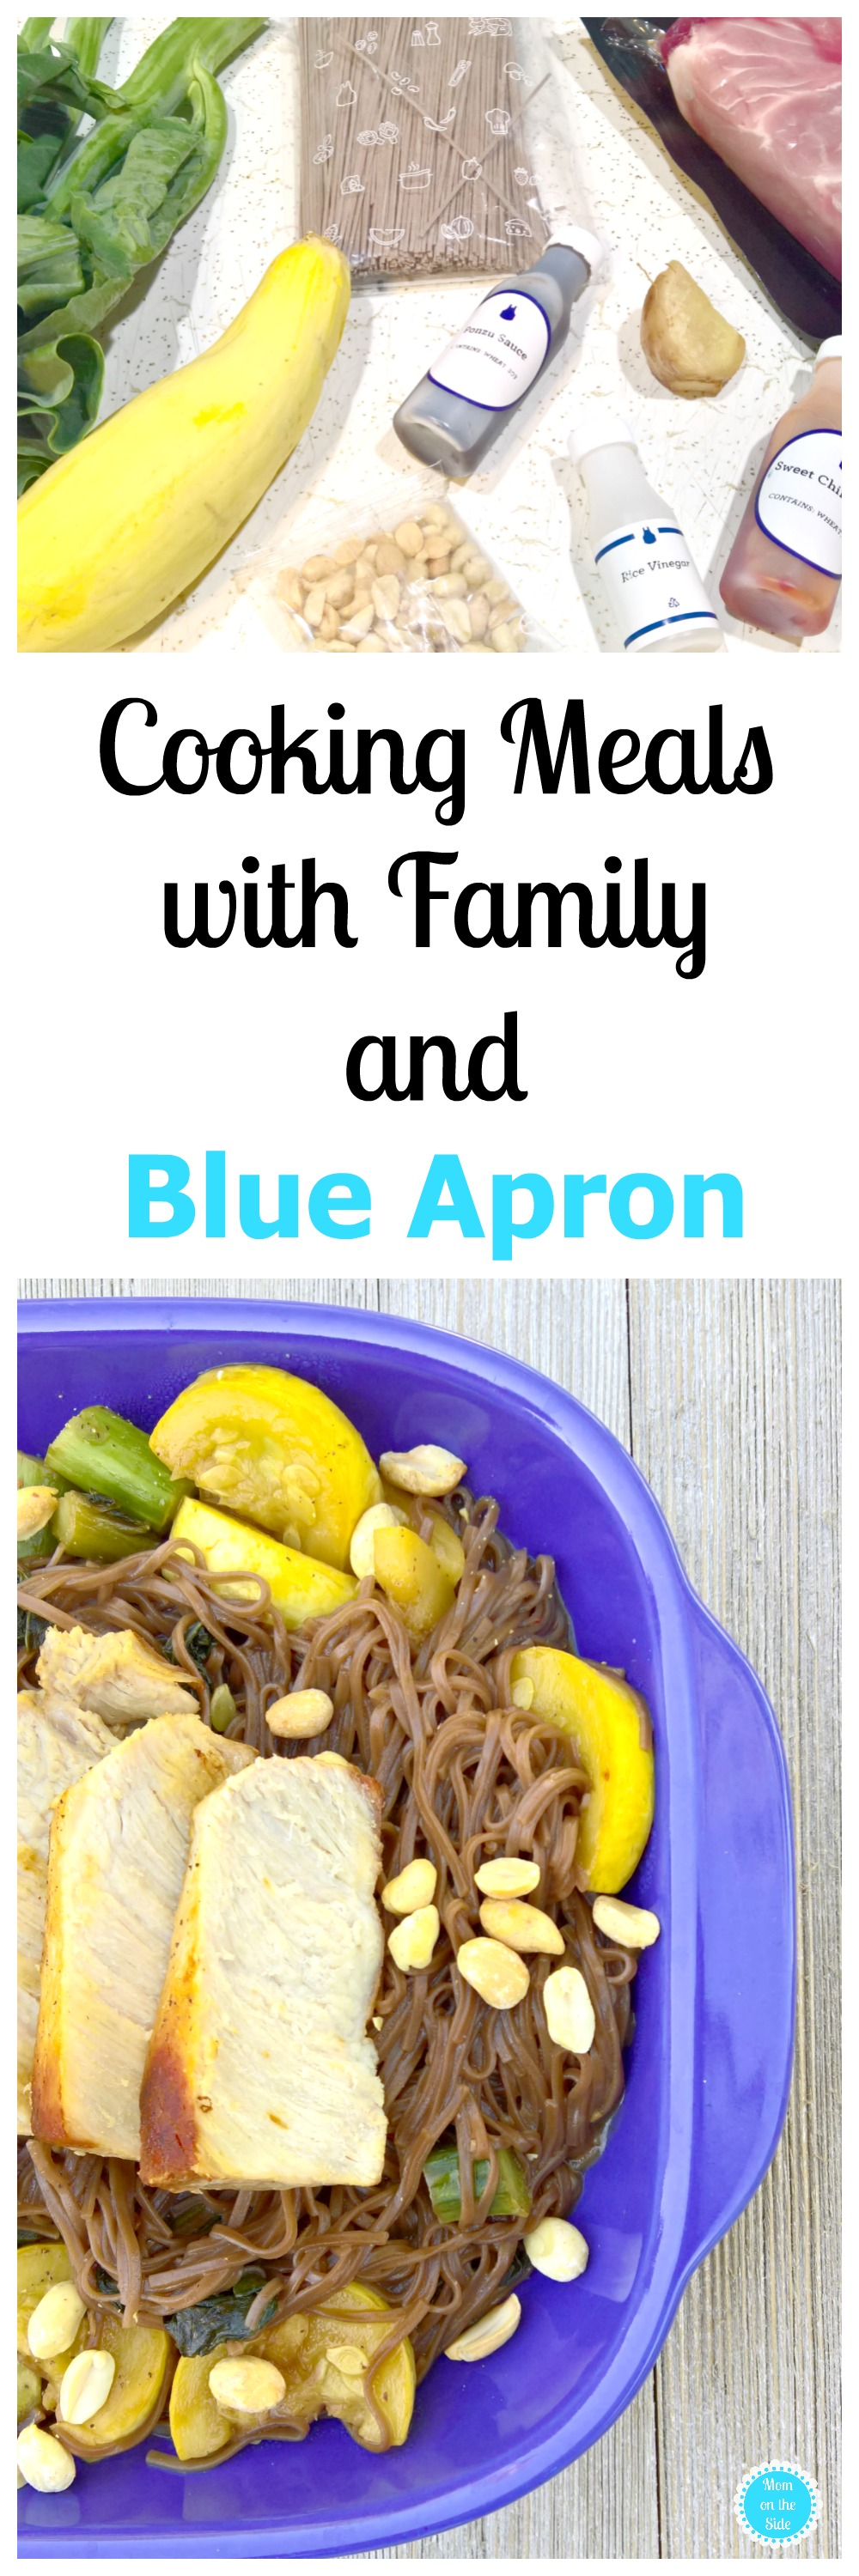 Blue Apron makes Cooking with Family Easier